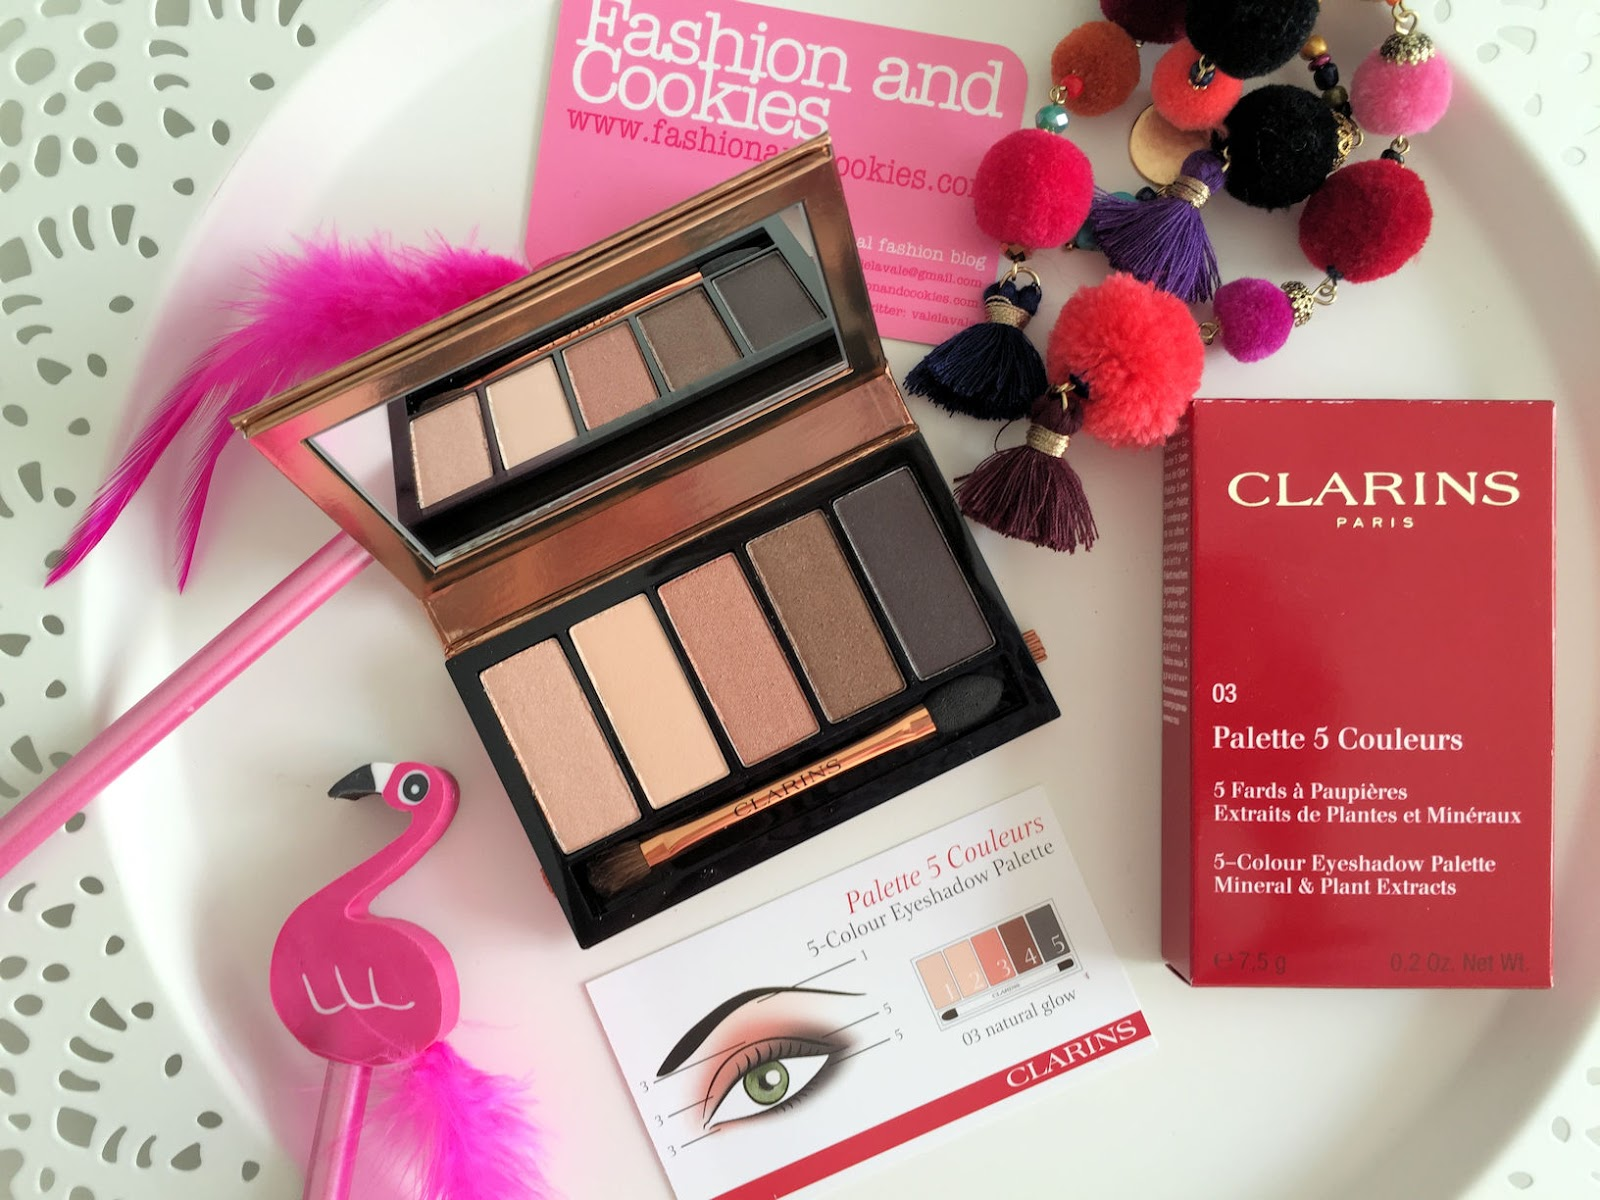 Clarins makeup Instant Glow Spring 2016 collection 5-colors eyeshadow palette review on Fashion and Cookies beauty blog, beauty blogger